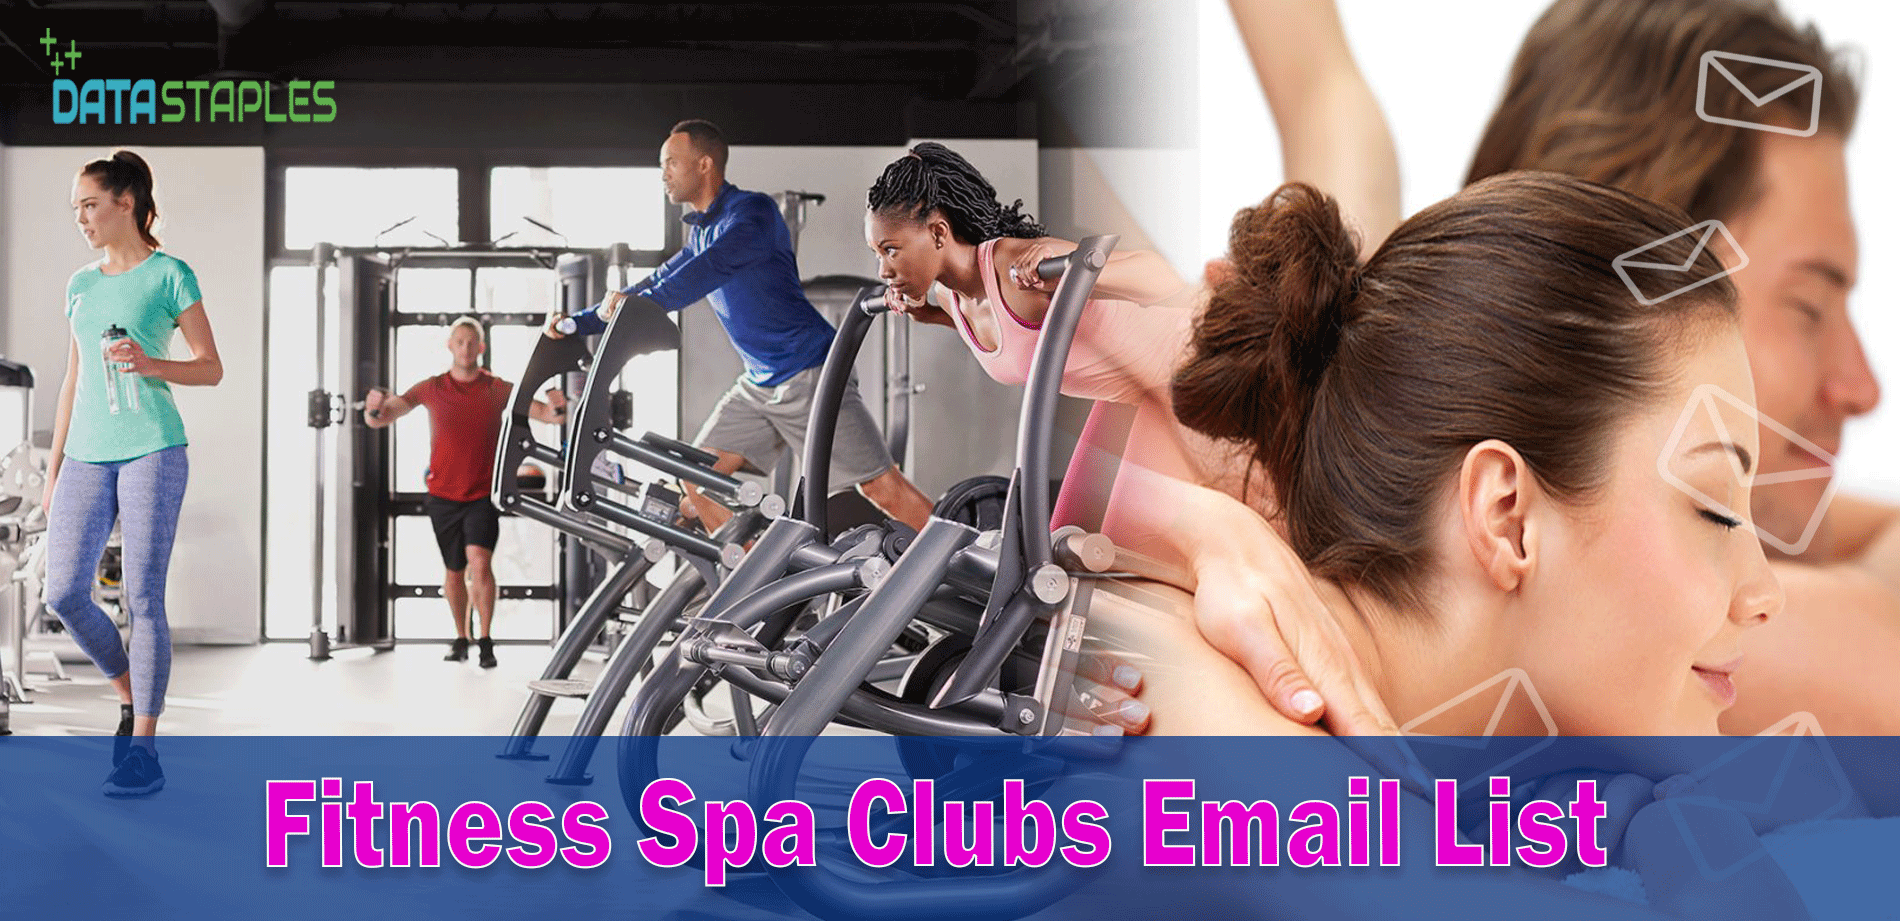 Fitness Spa Clubs Email List | DataStaples